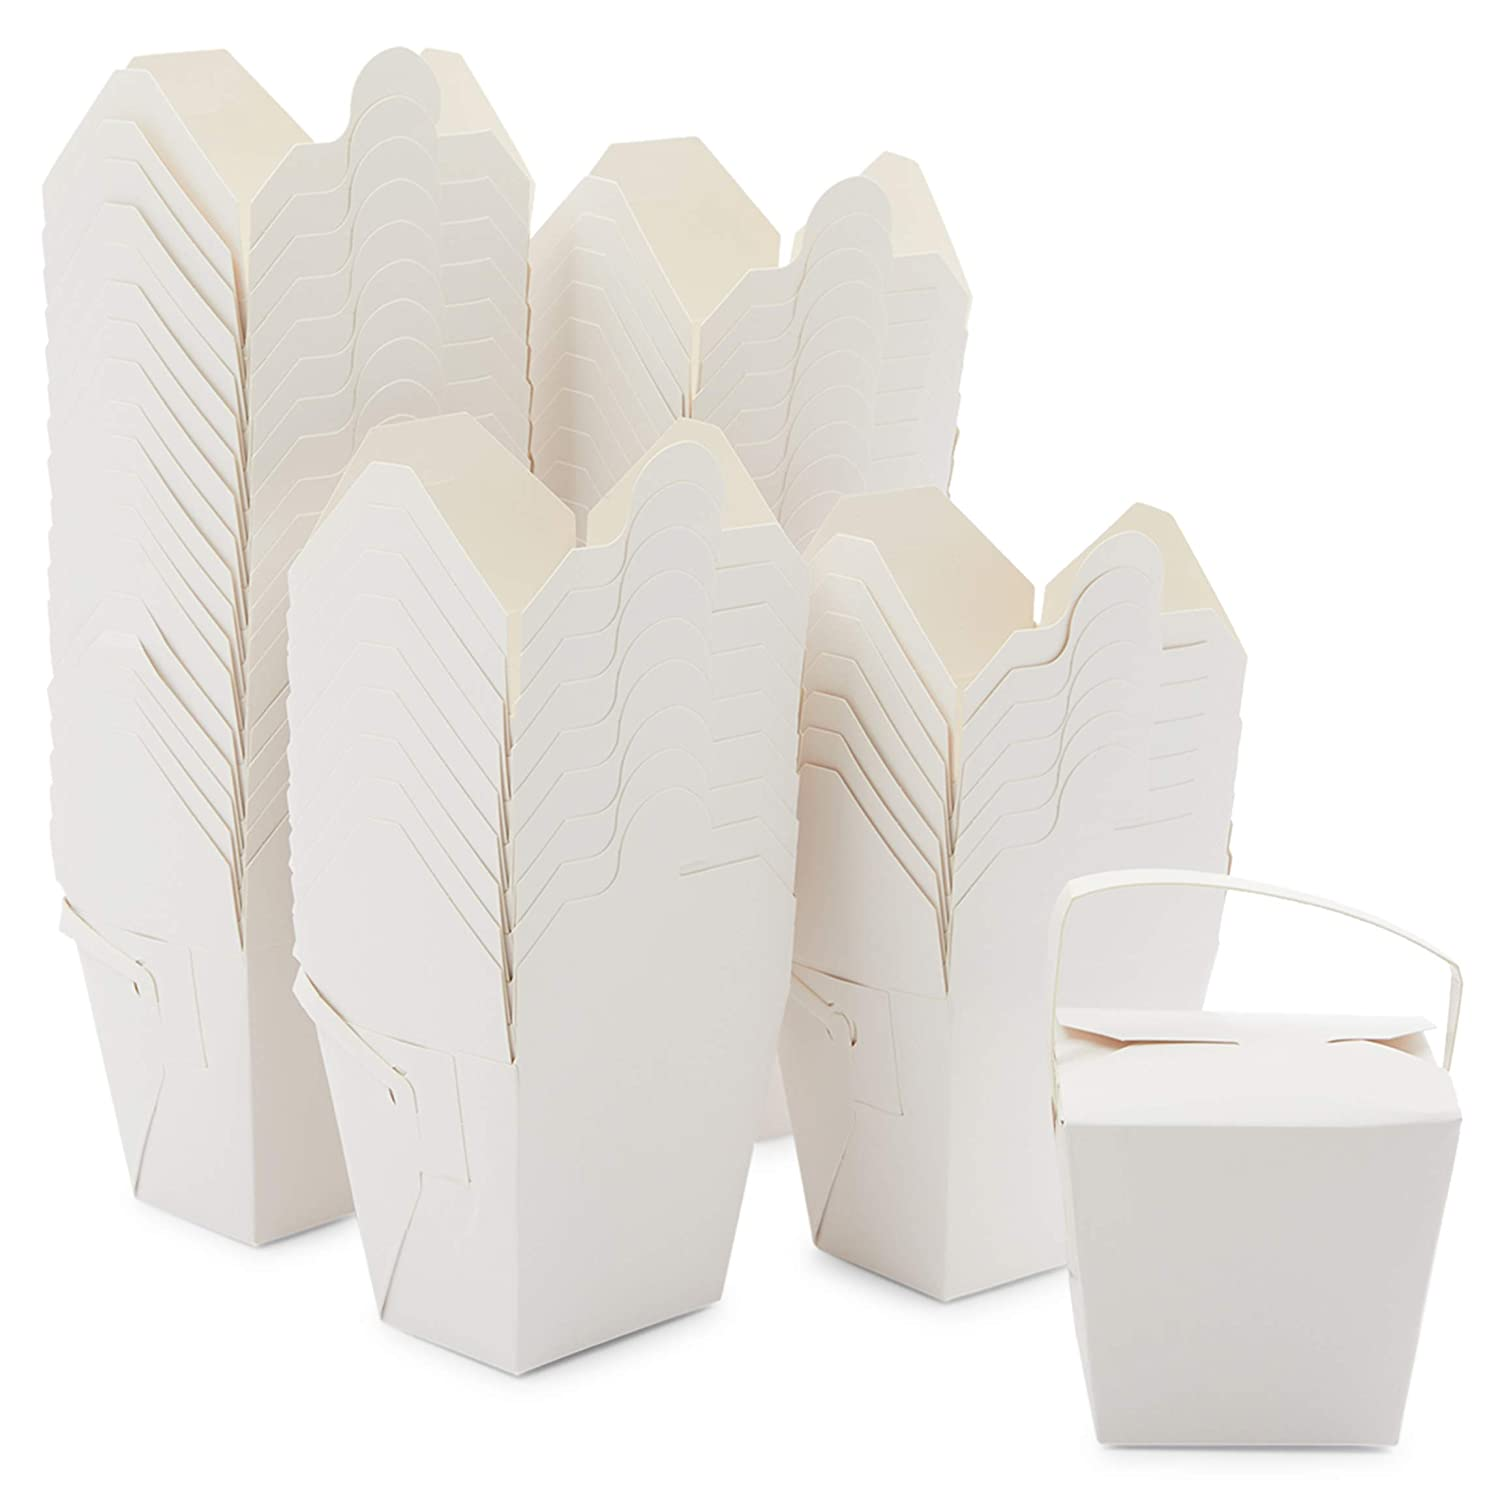 Take Out Boxes, White Paper to-Go Food Containers (16 oz, 50 Pack)